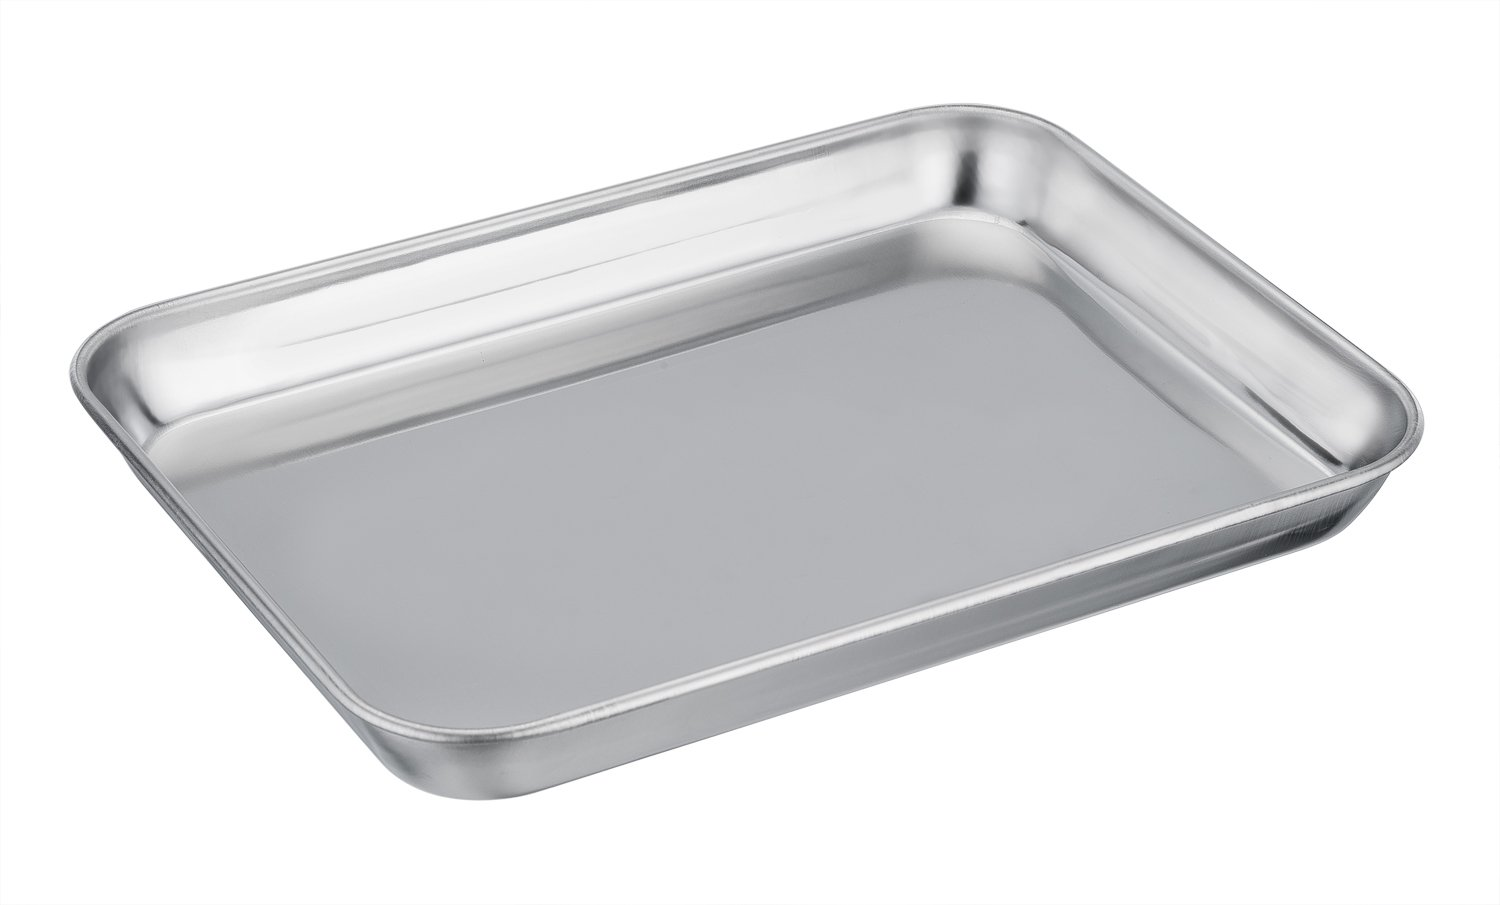 TeamFar Toaster Oven Tray and Rack Set, Stainless Steel Toaster Oven Pan Broiler Pan, Compact 7''x9''x1'', Non Toxic & Healthy, Easy Clean & Dishwasher Safe by TeamFar (Image #3)